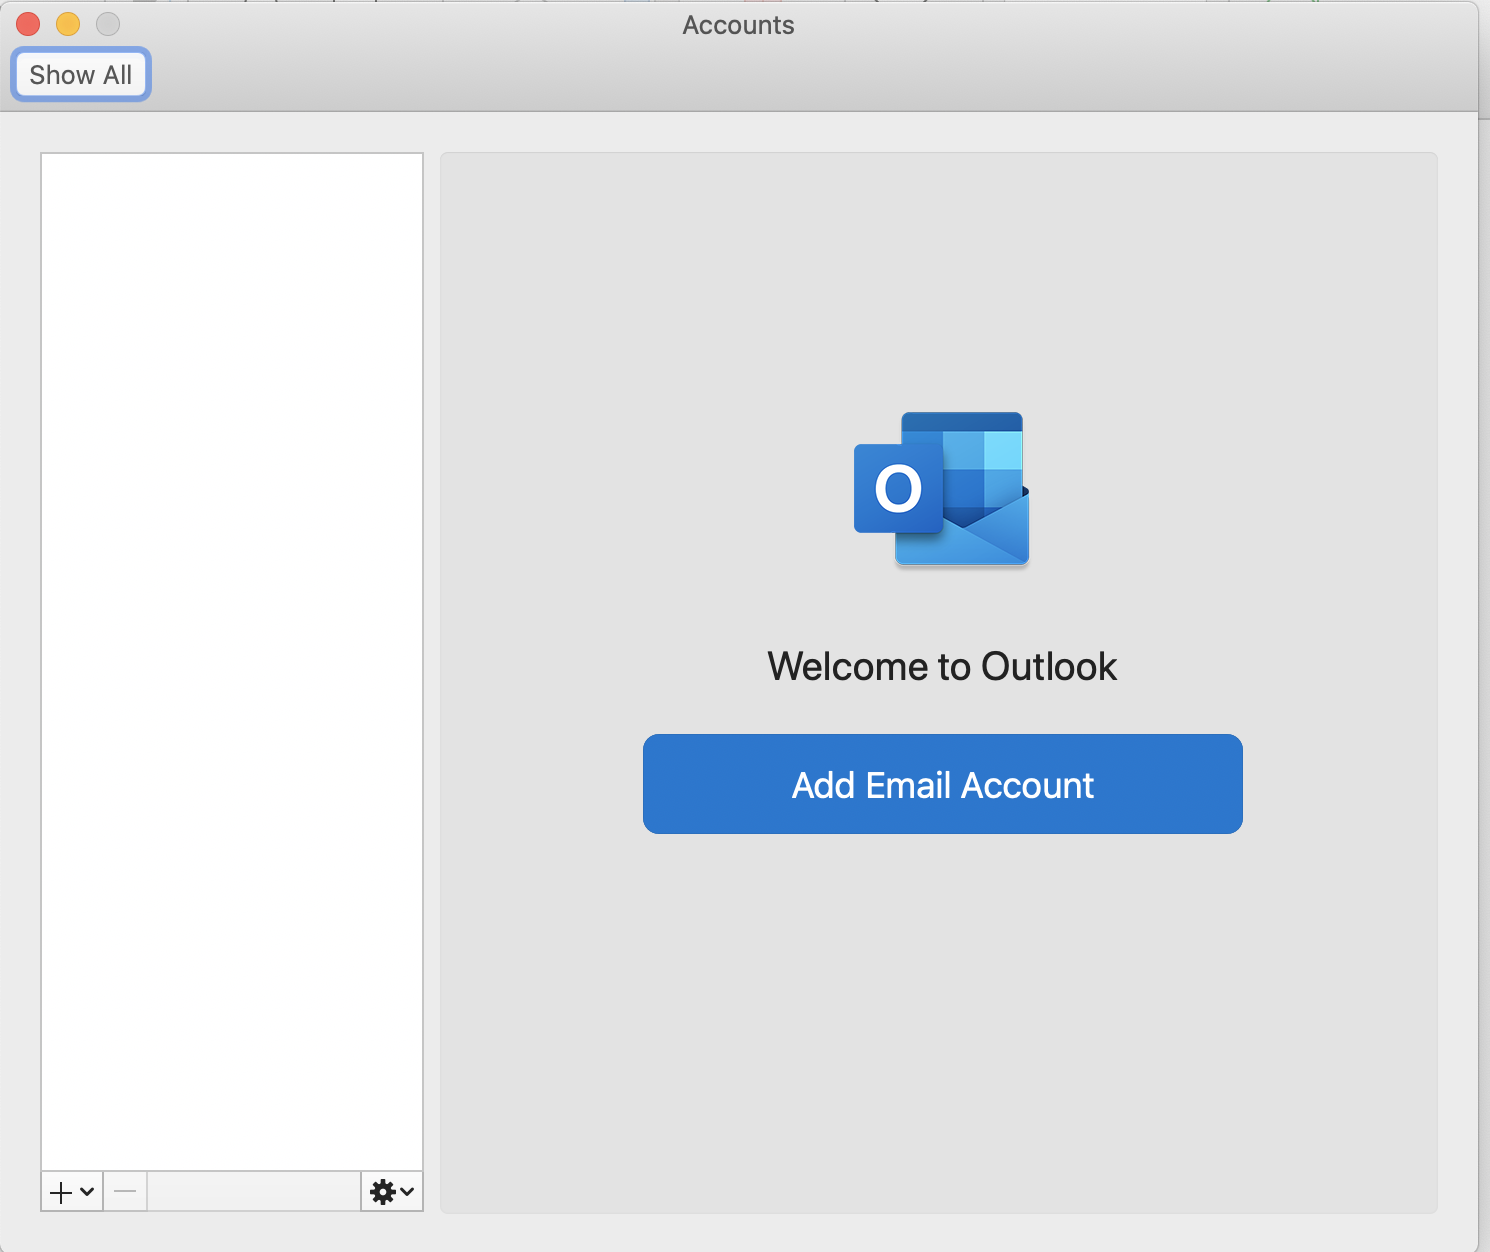 Screenshot of adding a new email account in Outlook for macOS